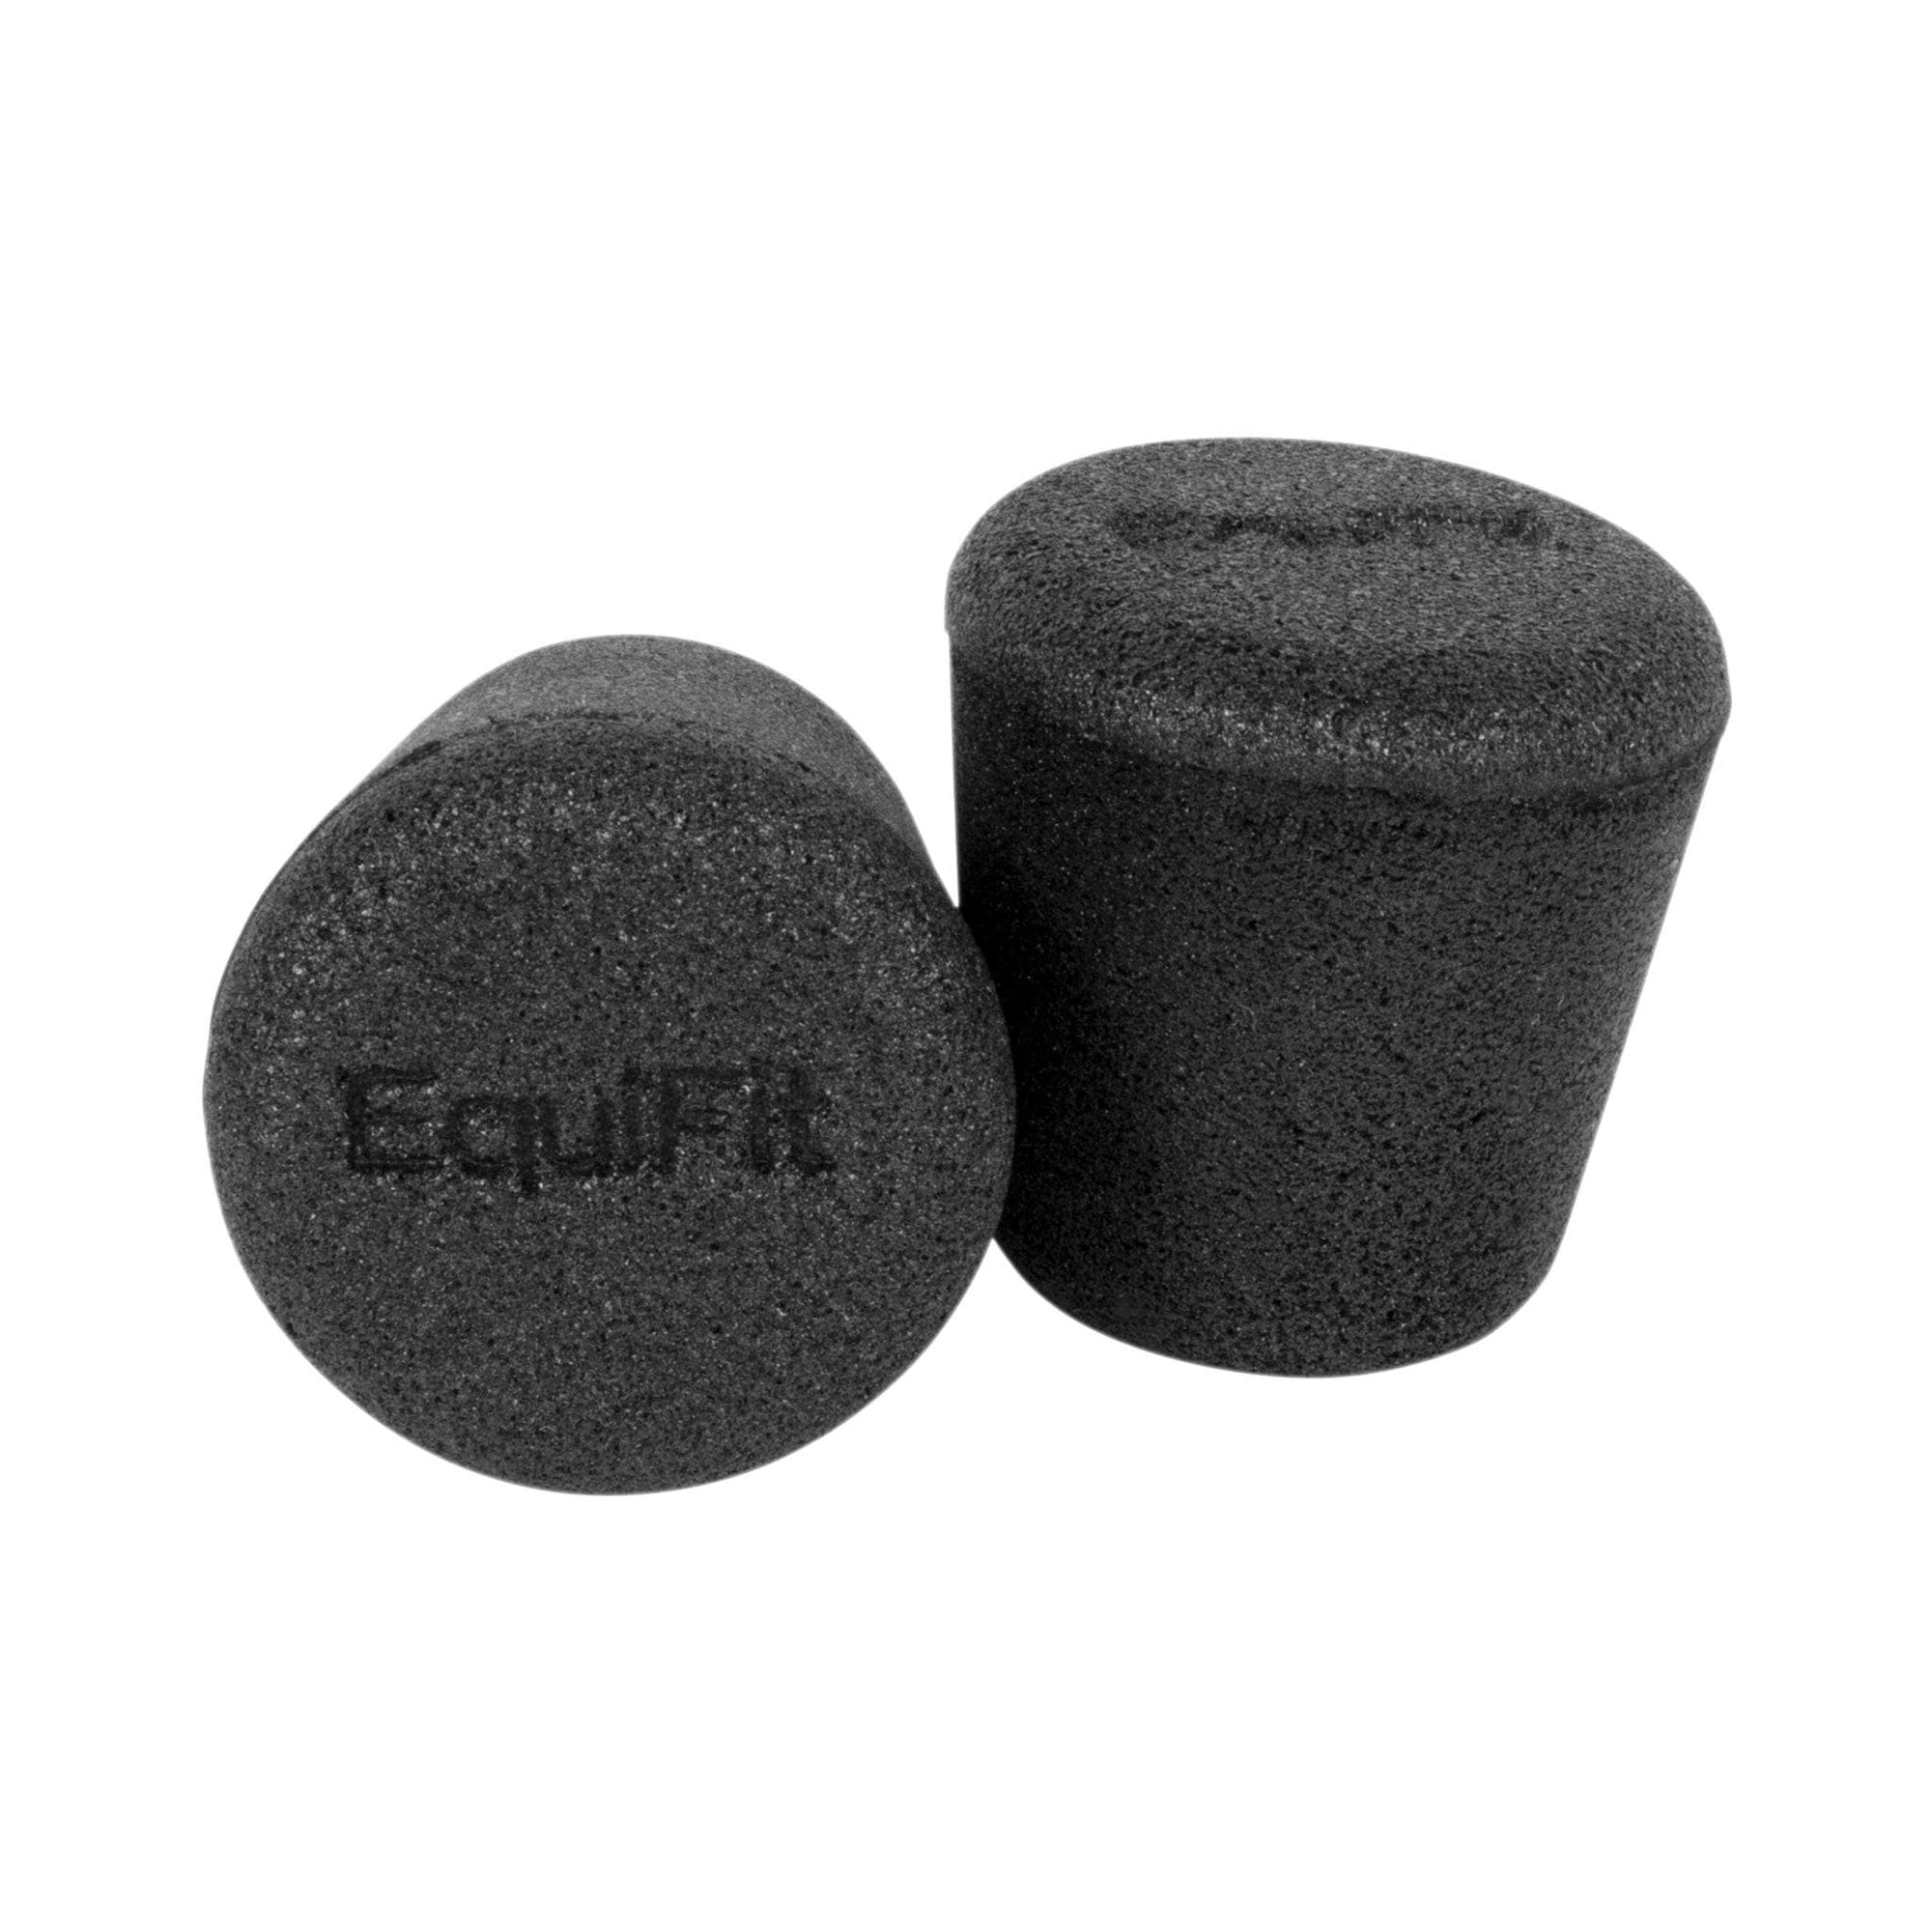 SilentFit EarPlugs